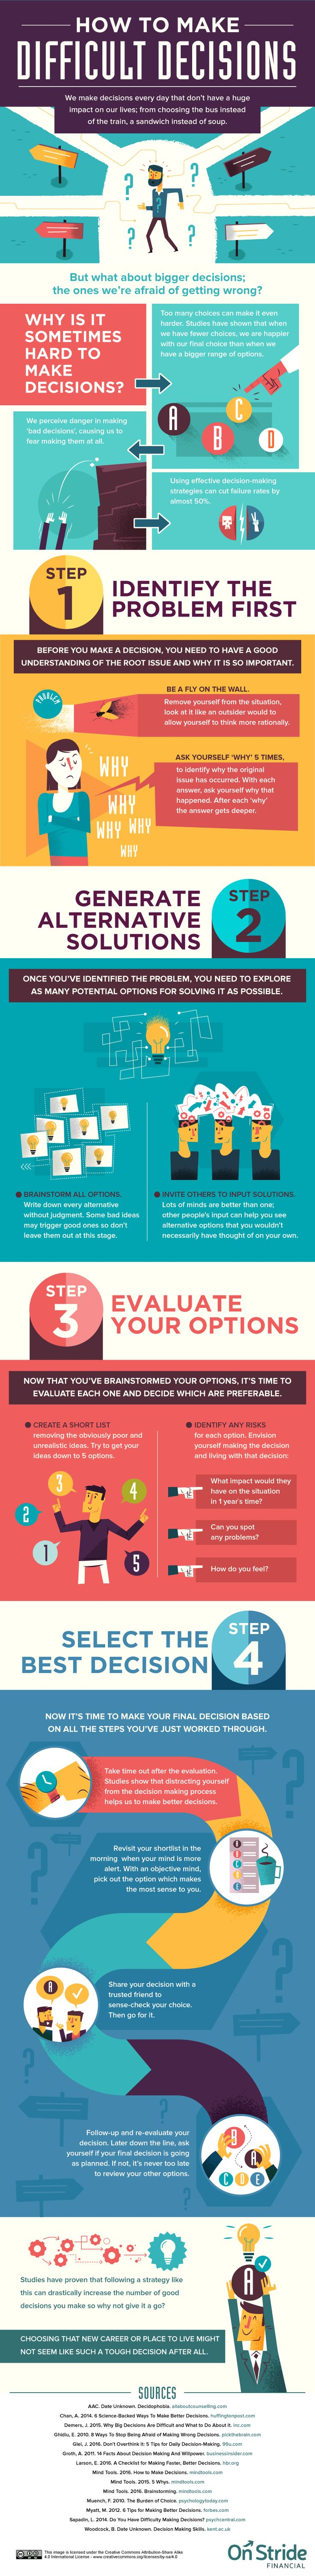 How to Make Difficult Decisions #Infographic #HowTo #Decision